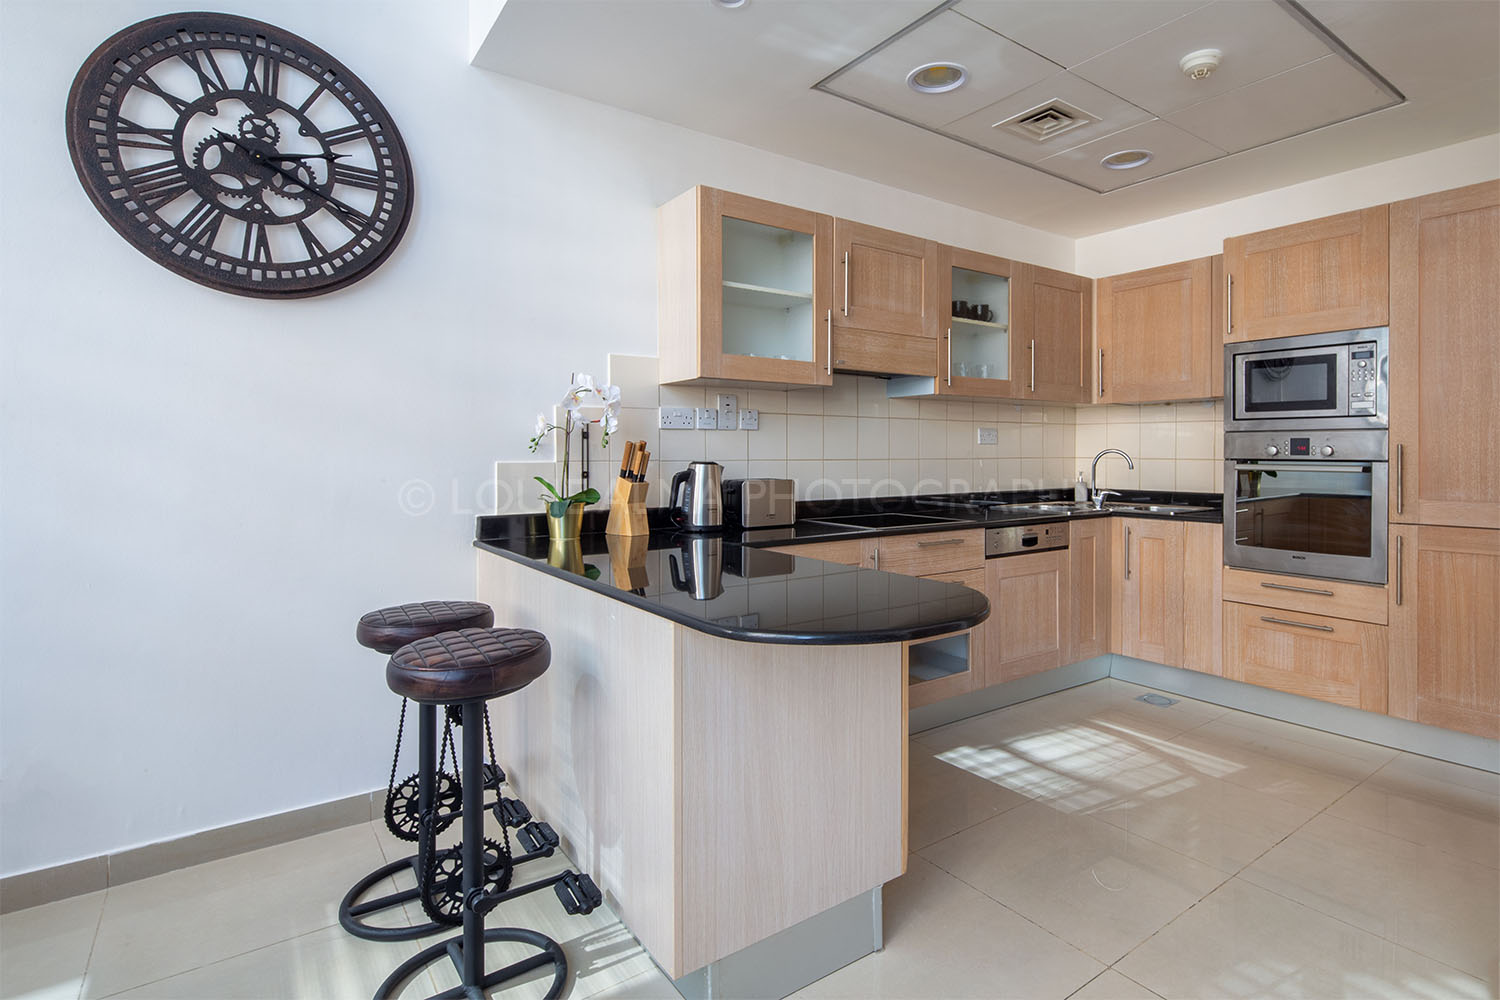 Real Estate Photography - Amazing Location, Comfy Apartment in Dubai Marina